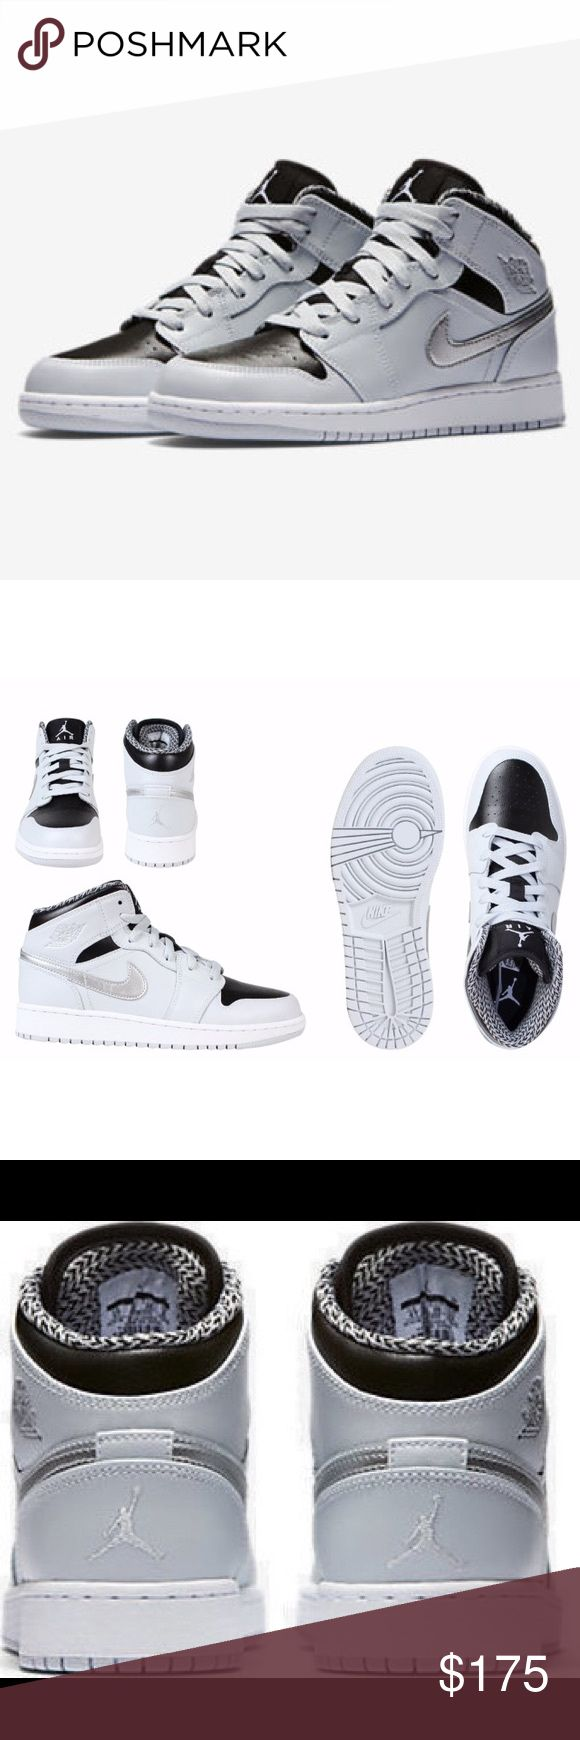 NIKE AIR JORDAN 1 WOMENS SIZE 8 METALLIC SHOES Shoes are a size 6.5 youth. Which is a women's size 8. I posted a sizing chart for your convenience. Brand new without box. 100% authentic Nike Shoes Sneakers